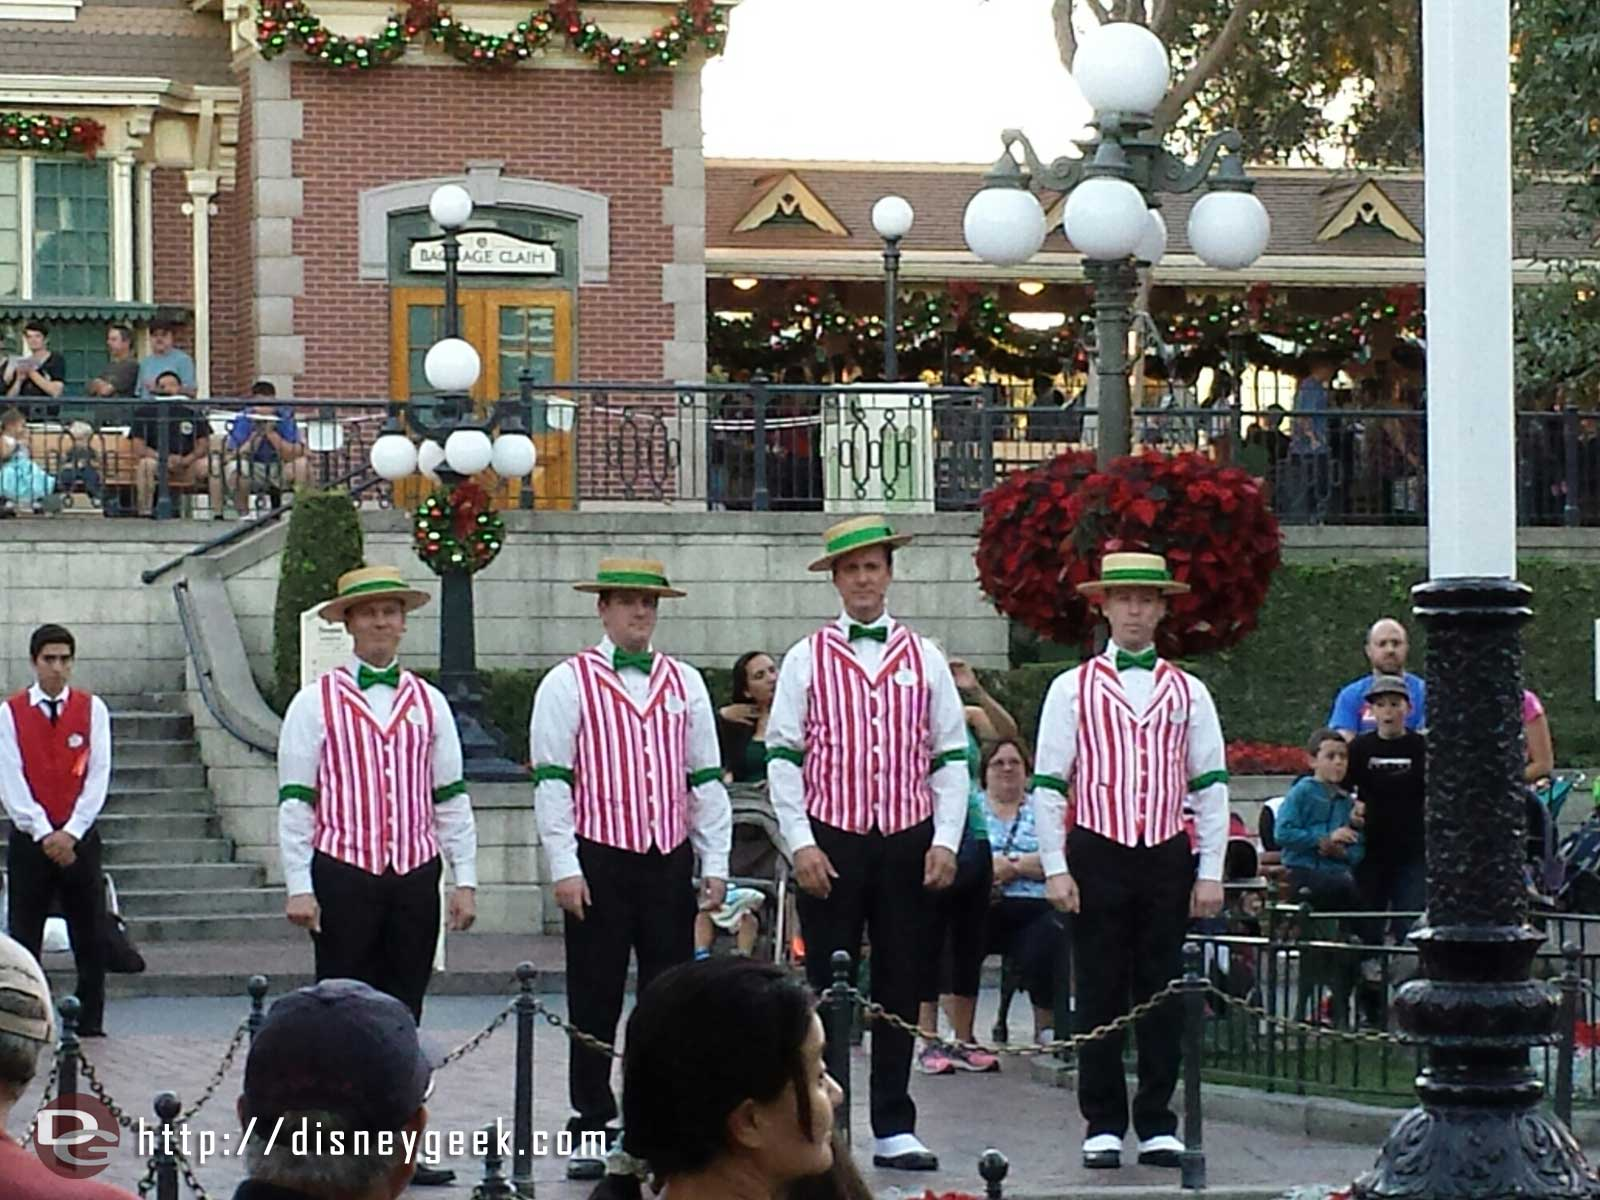 The Dapper Dans of #Disneyland at the nightly Flag Retreat in Town Square